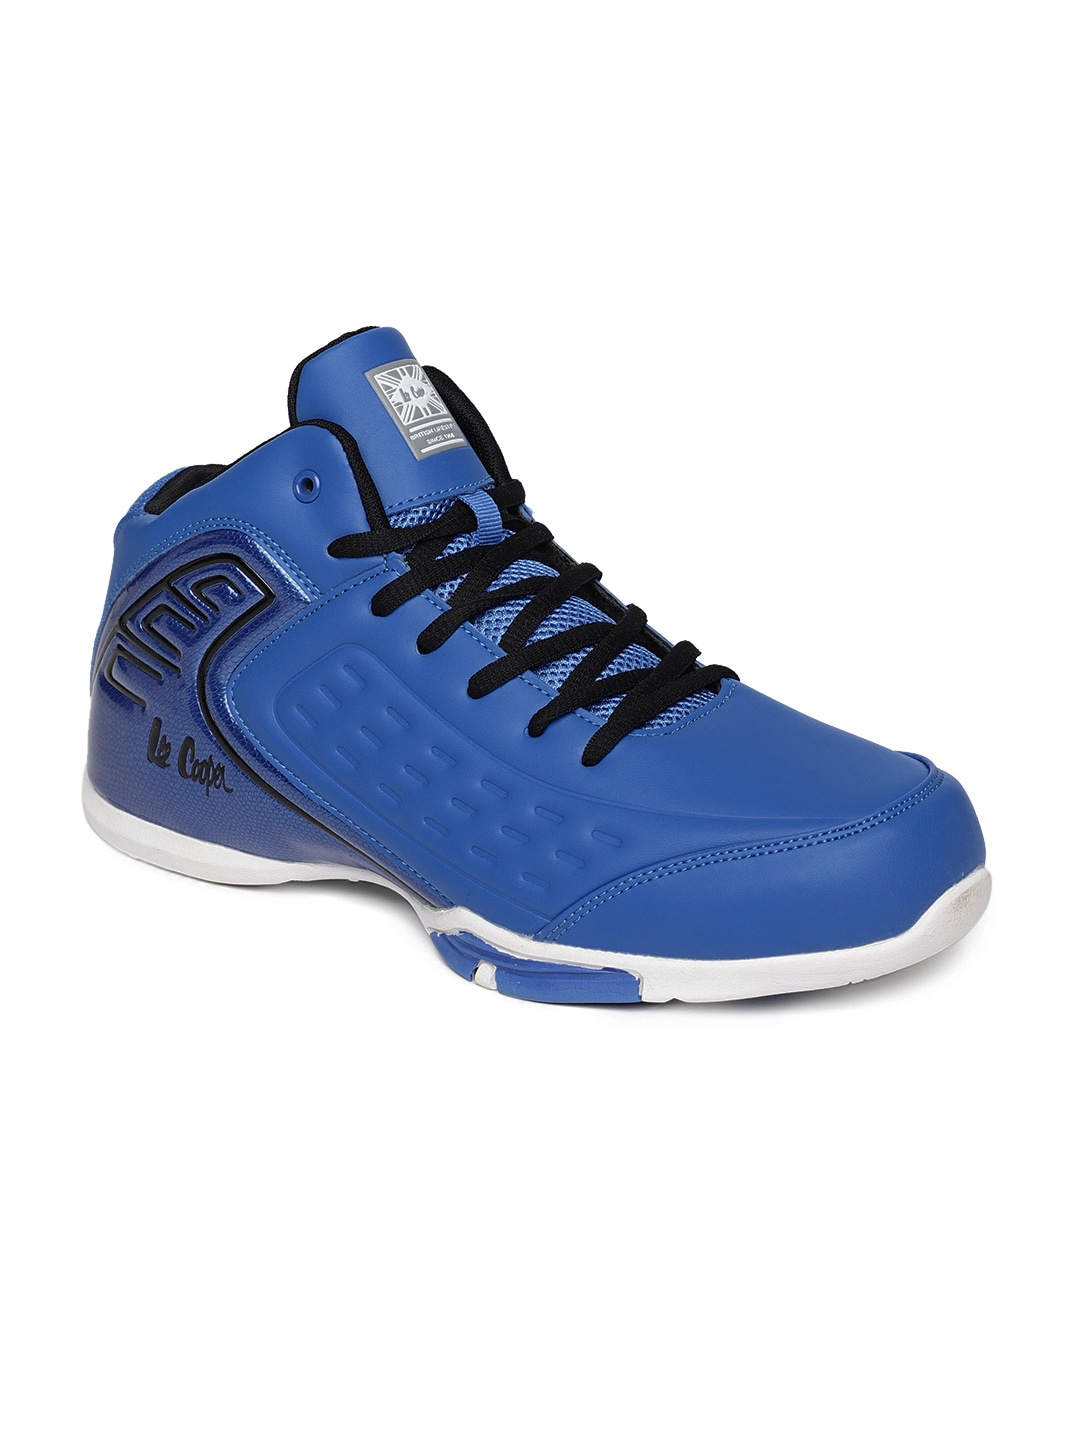 b0eaff799edd Buy Lee Cooper Men White LC3665 Mid Top Basketball Shoes - Sports ...